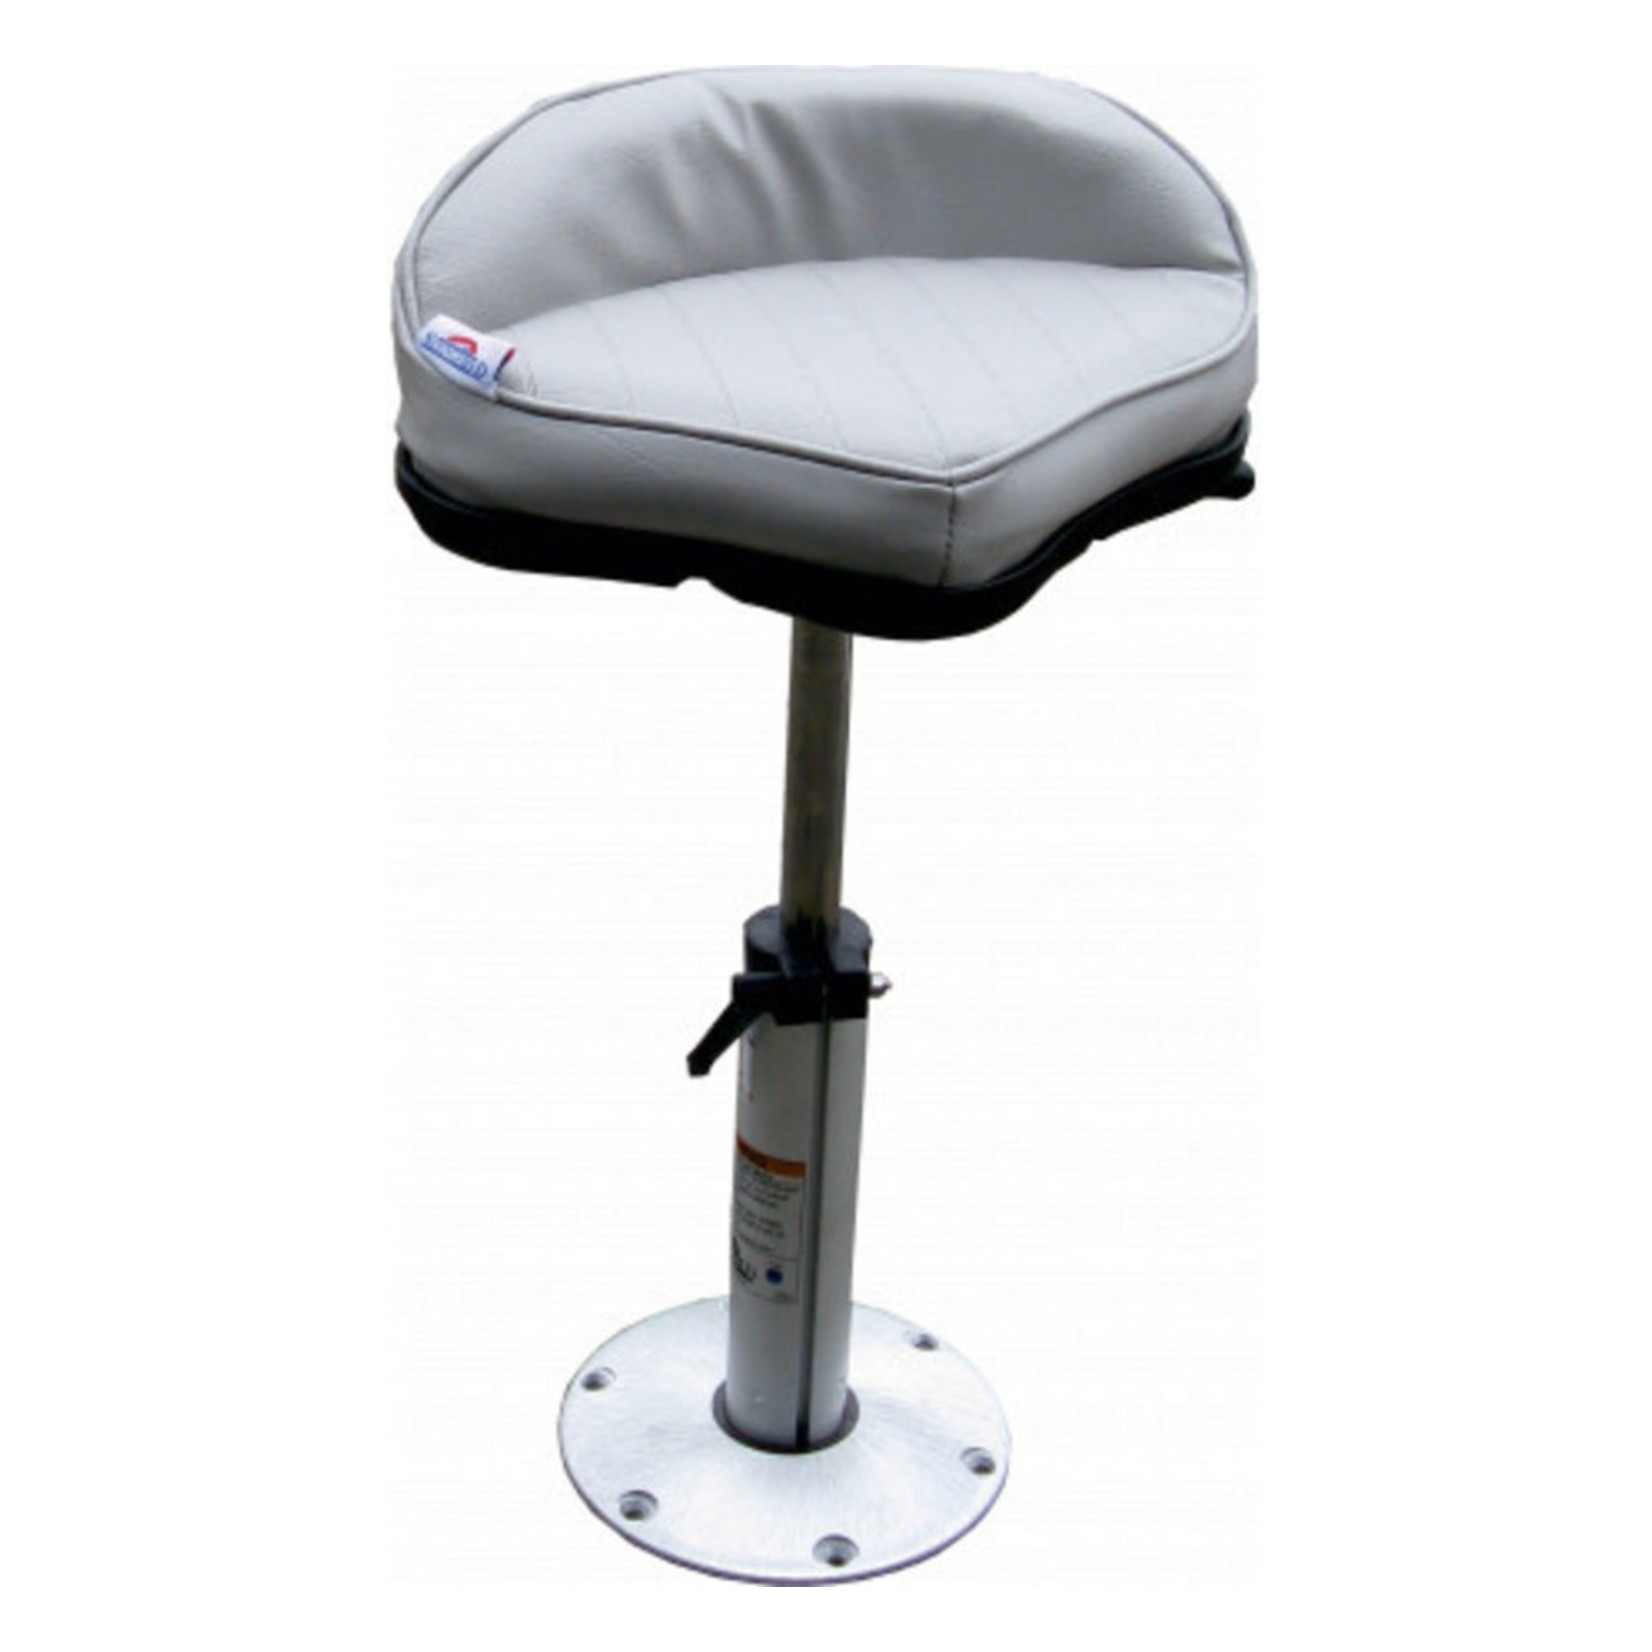 Allpa Plug-in Boat Seating  - Complete